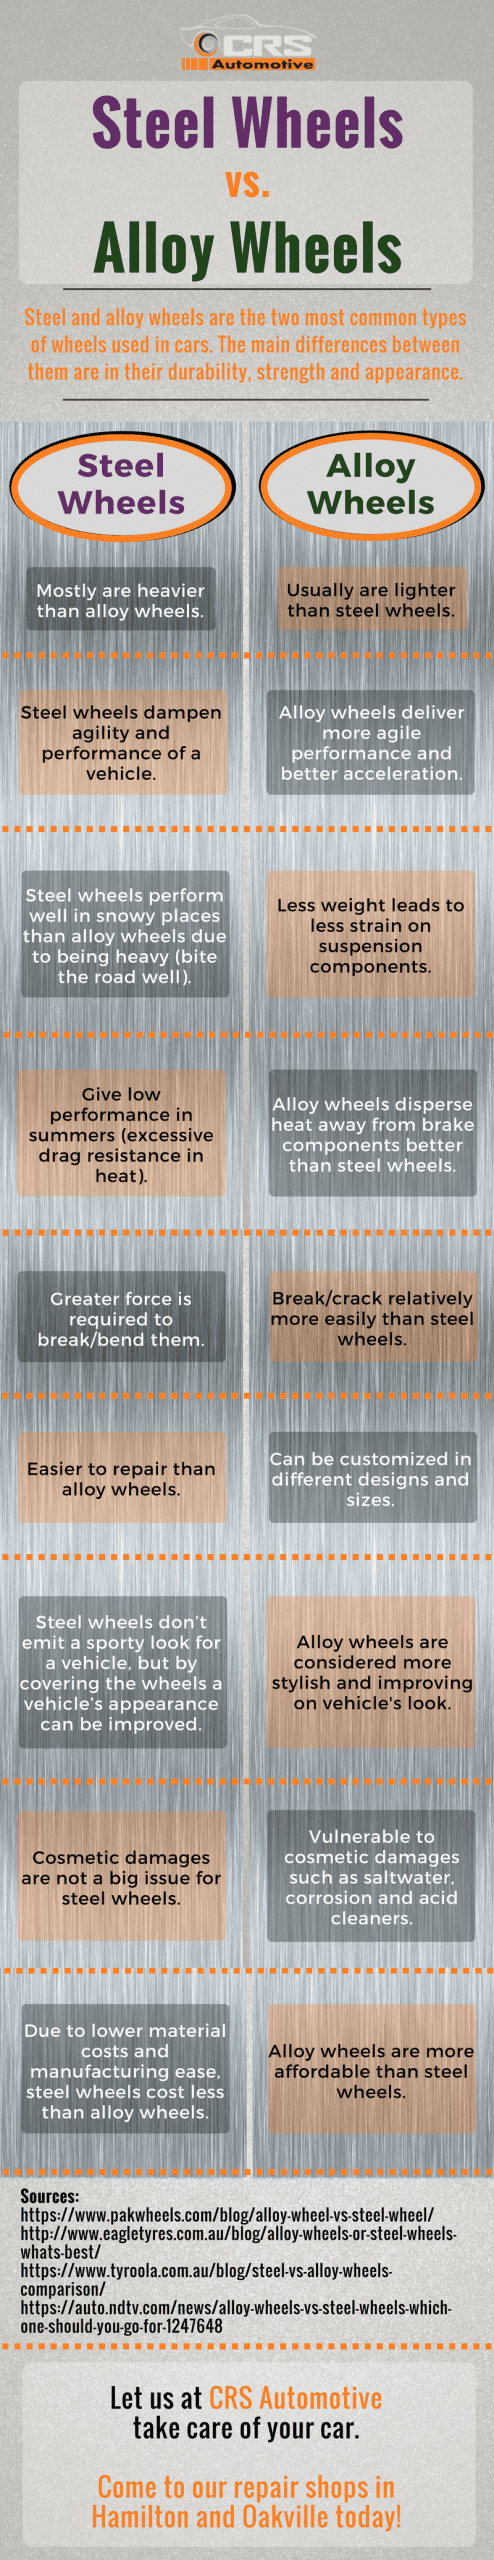 Steel Wheels vs. Alloy Wheels INFOGRAPHIC